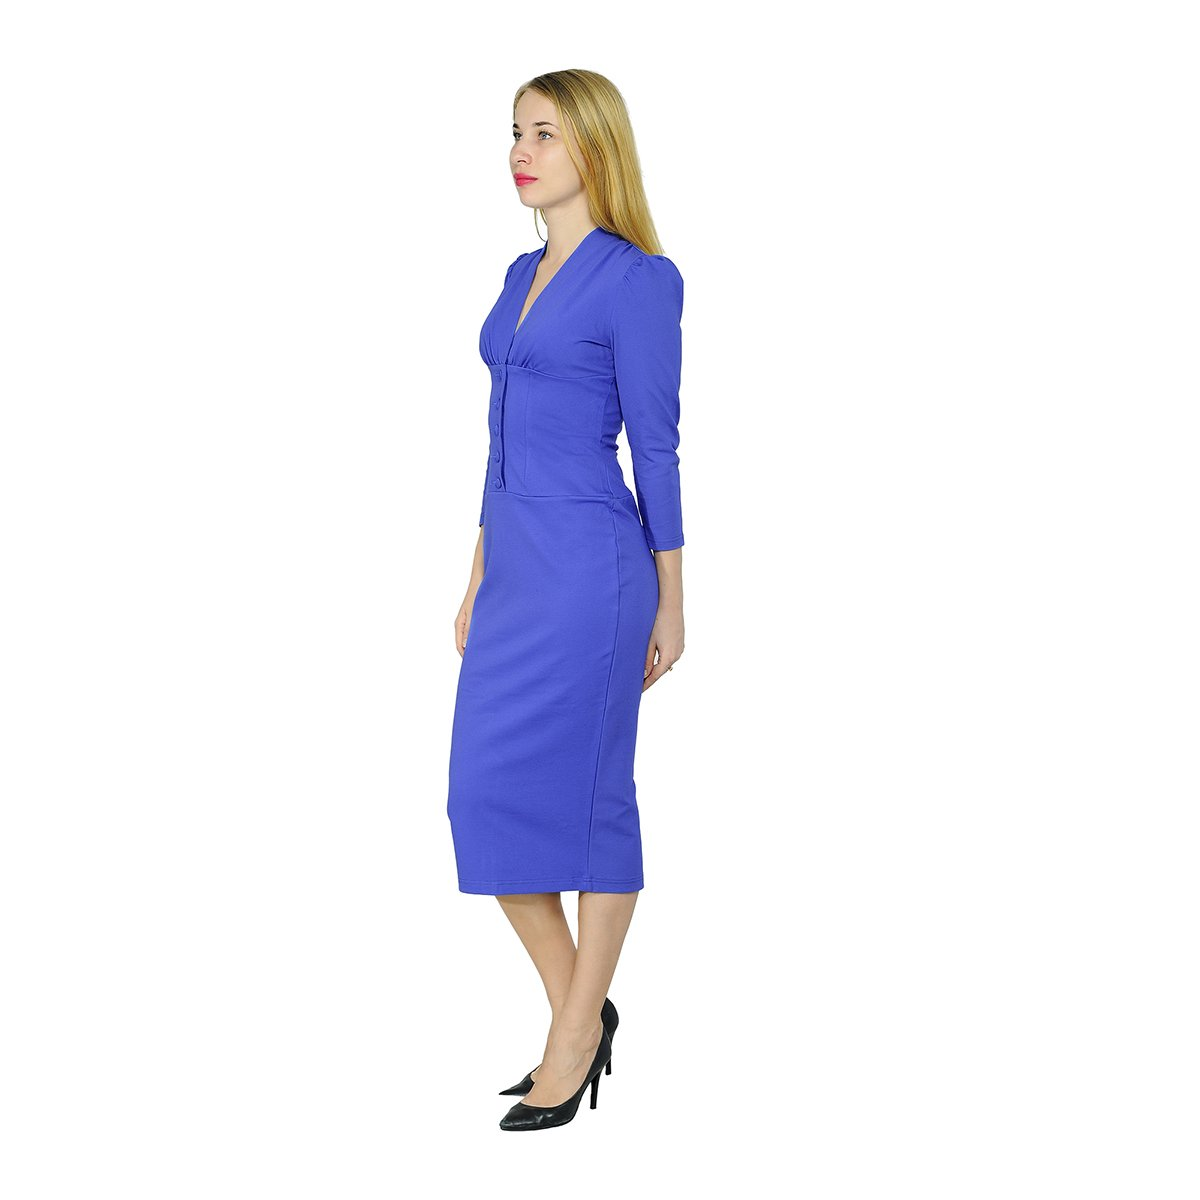 caa1f7eb037 Marycrafts Women s Vintage 1940s Pencil Dress Work Office Cocktail at  Amazon Women s Clothing store